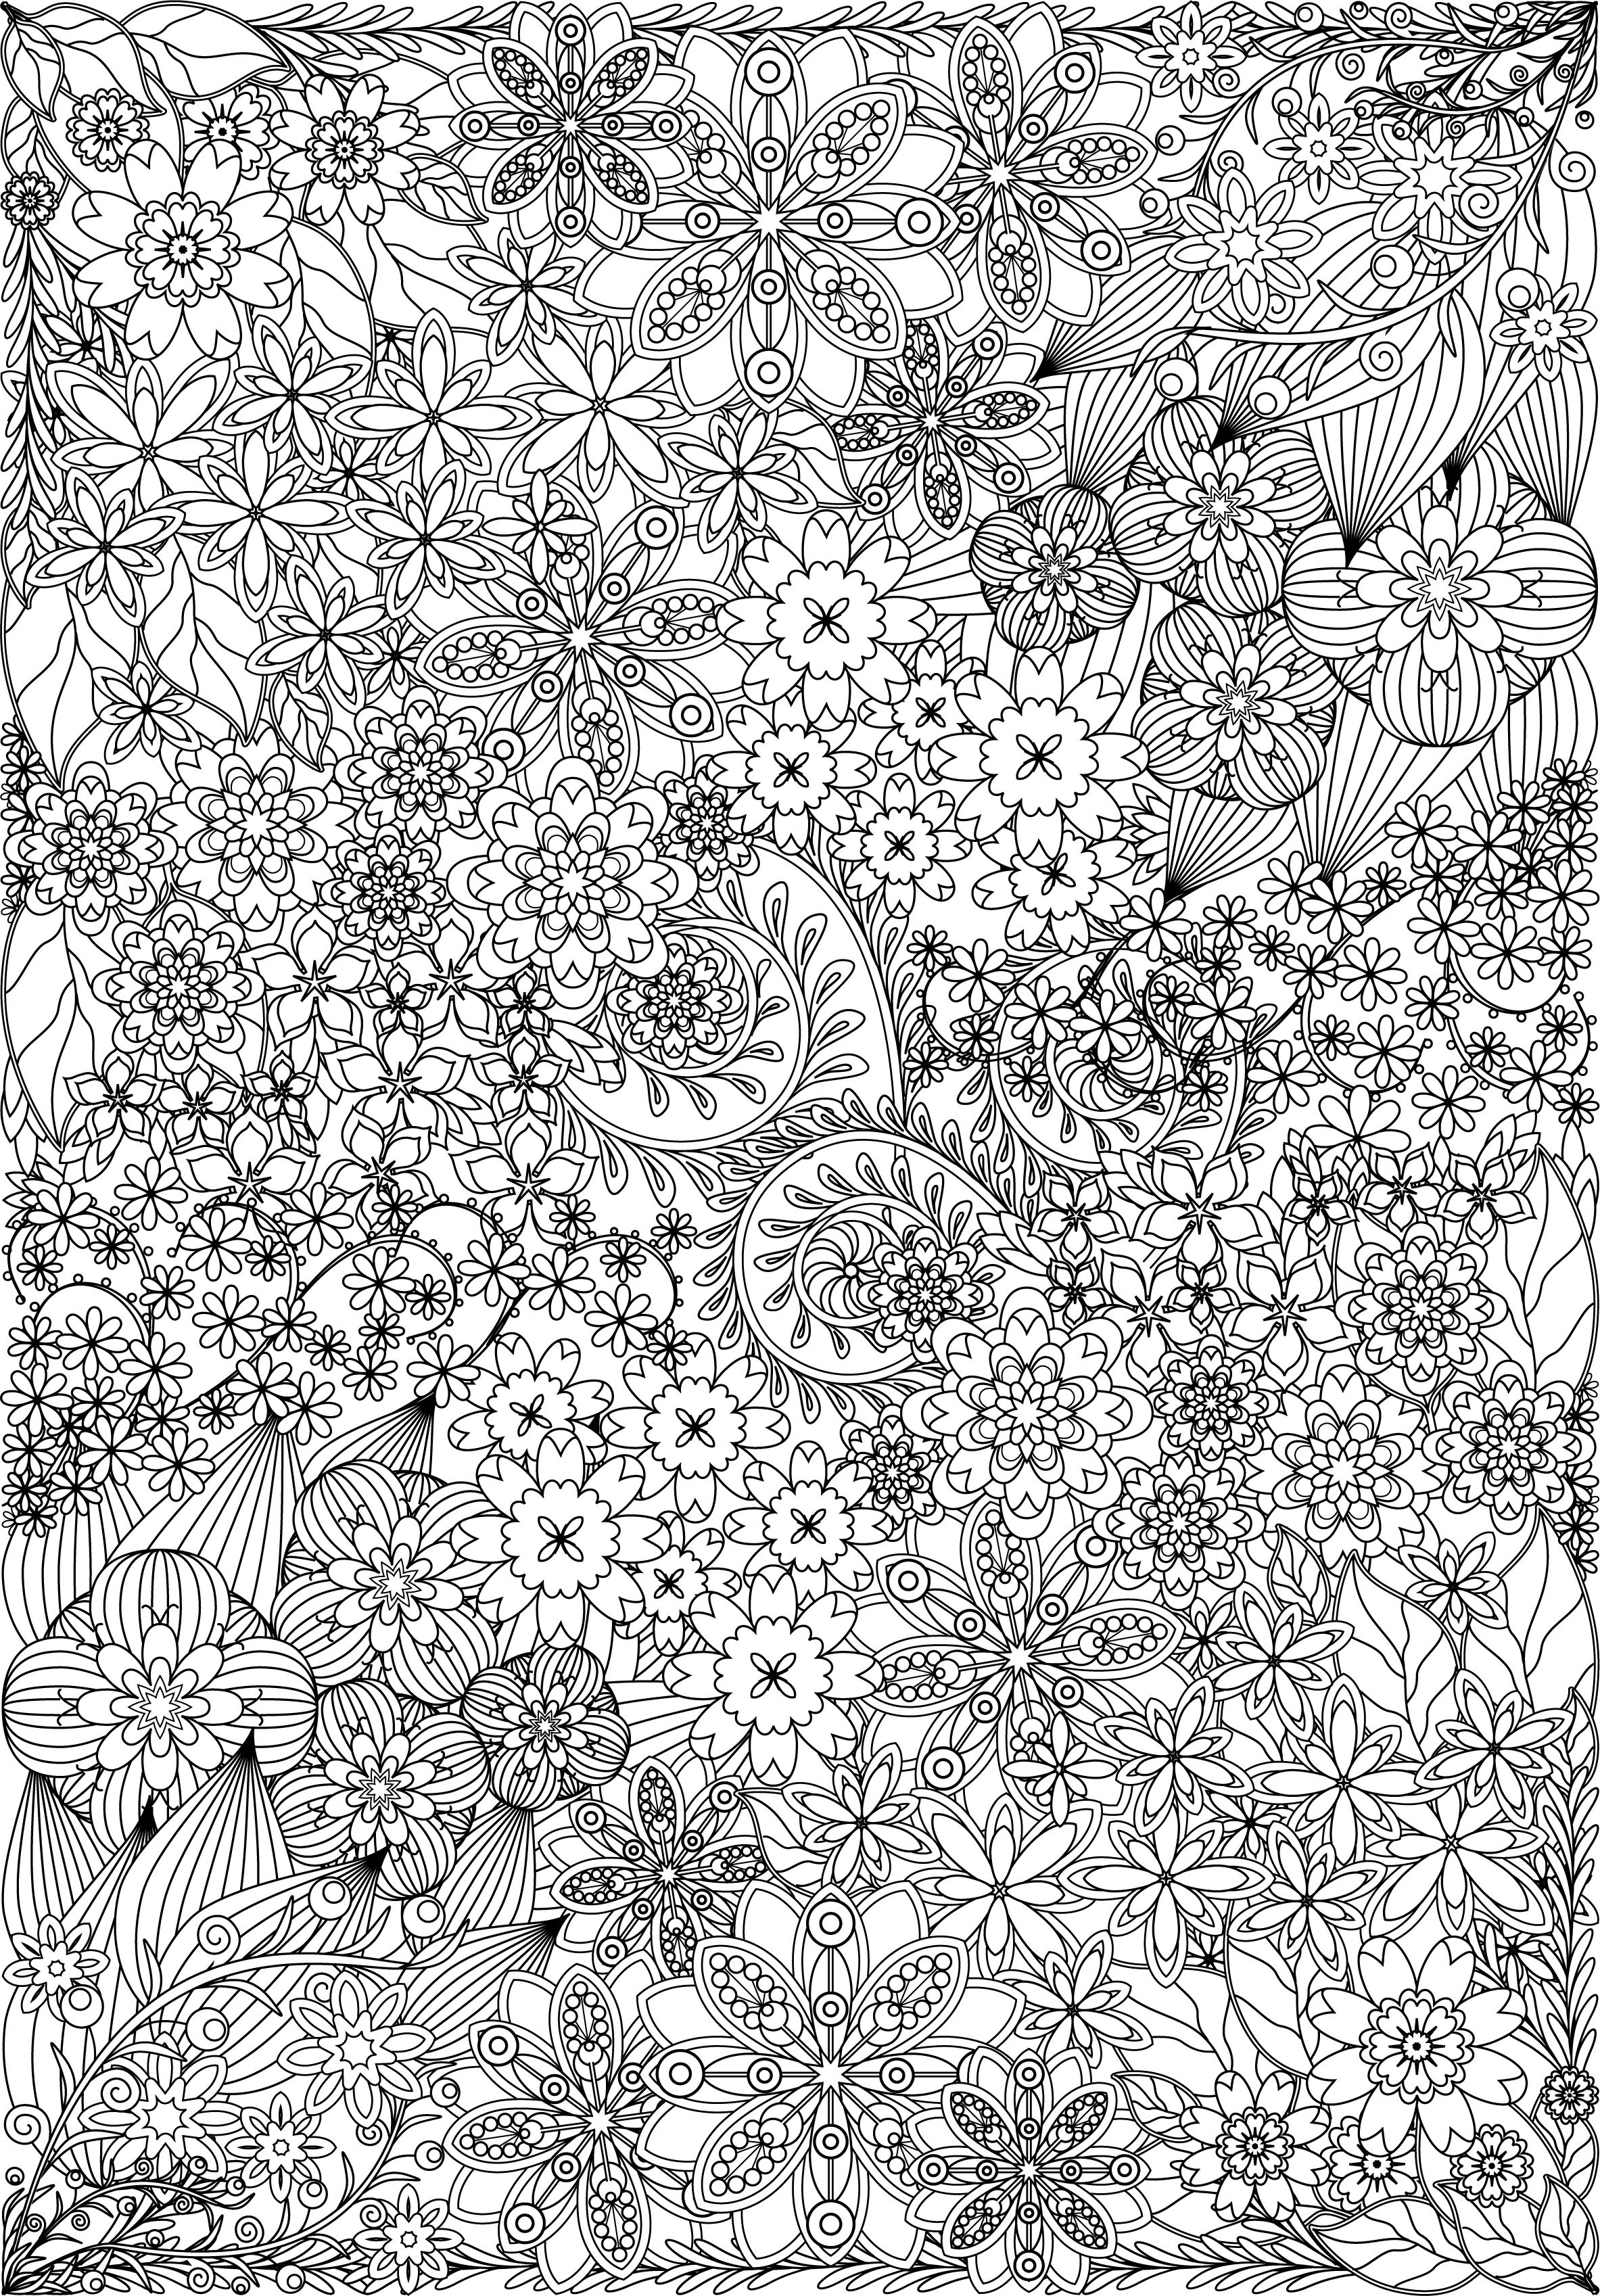 Coloring Page Flowers And Plants For Meditation